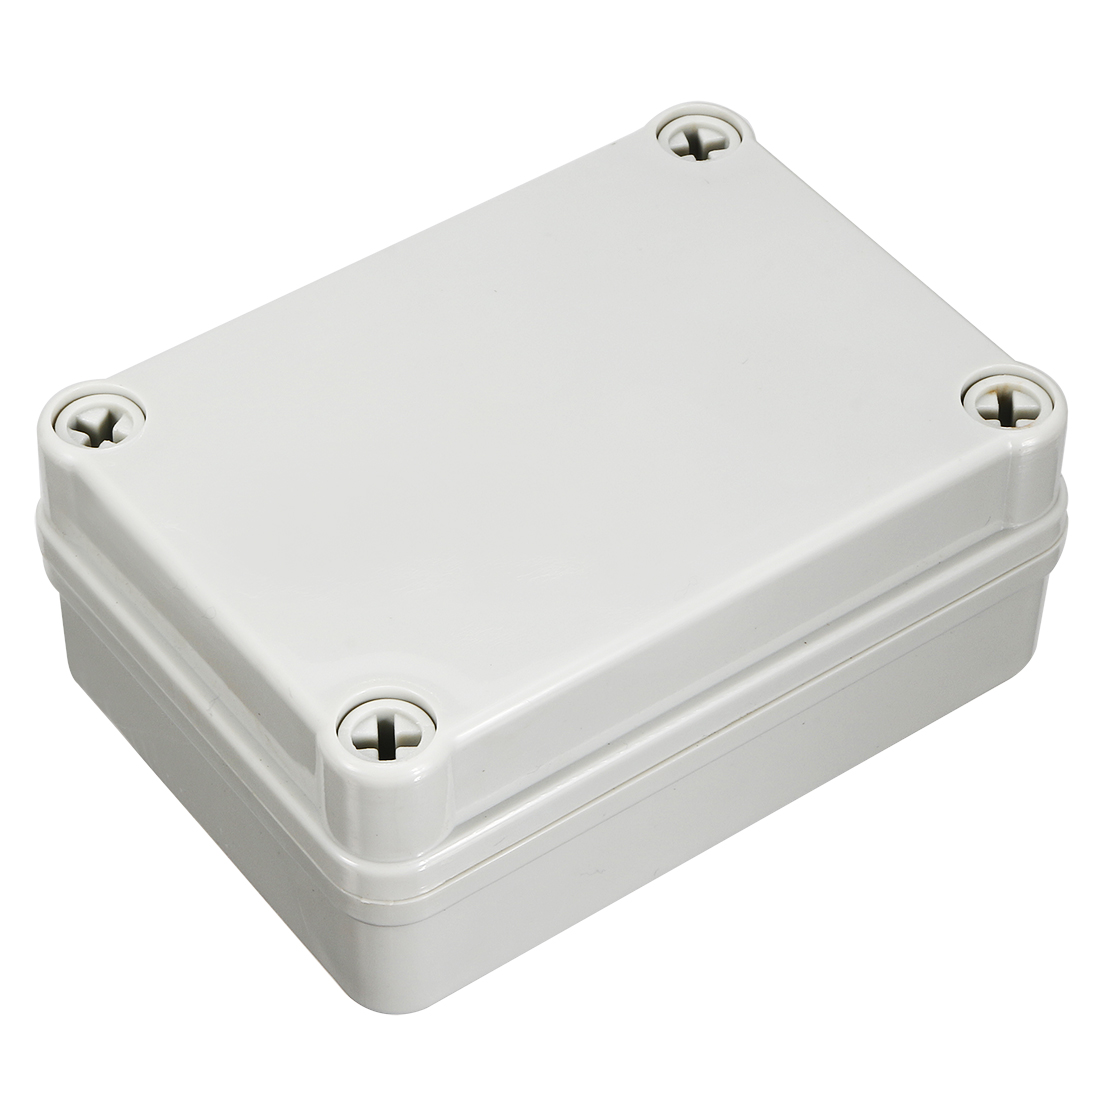 110mm x 80mm x 45mm Waterproof Rectangle Plastic Sealed Junction Enclose Box Power Protection Case